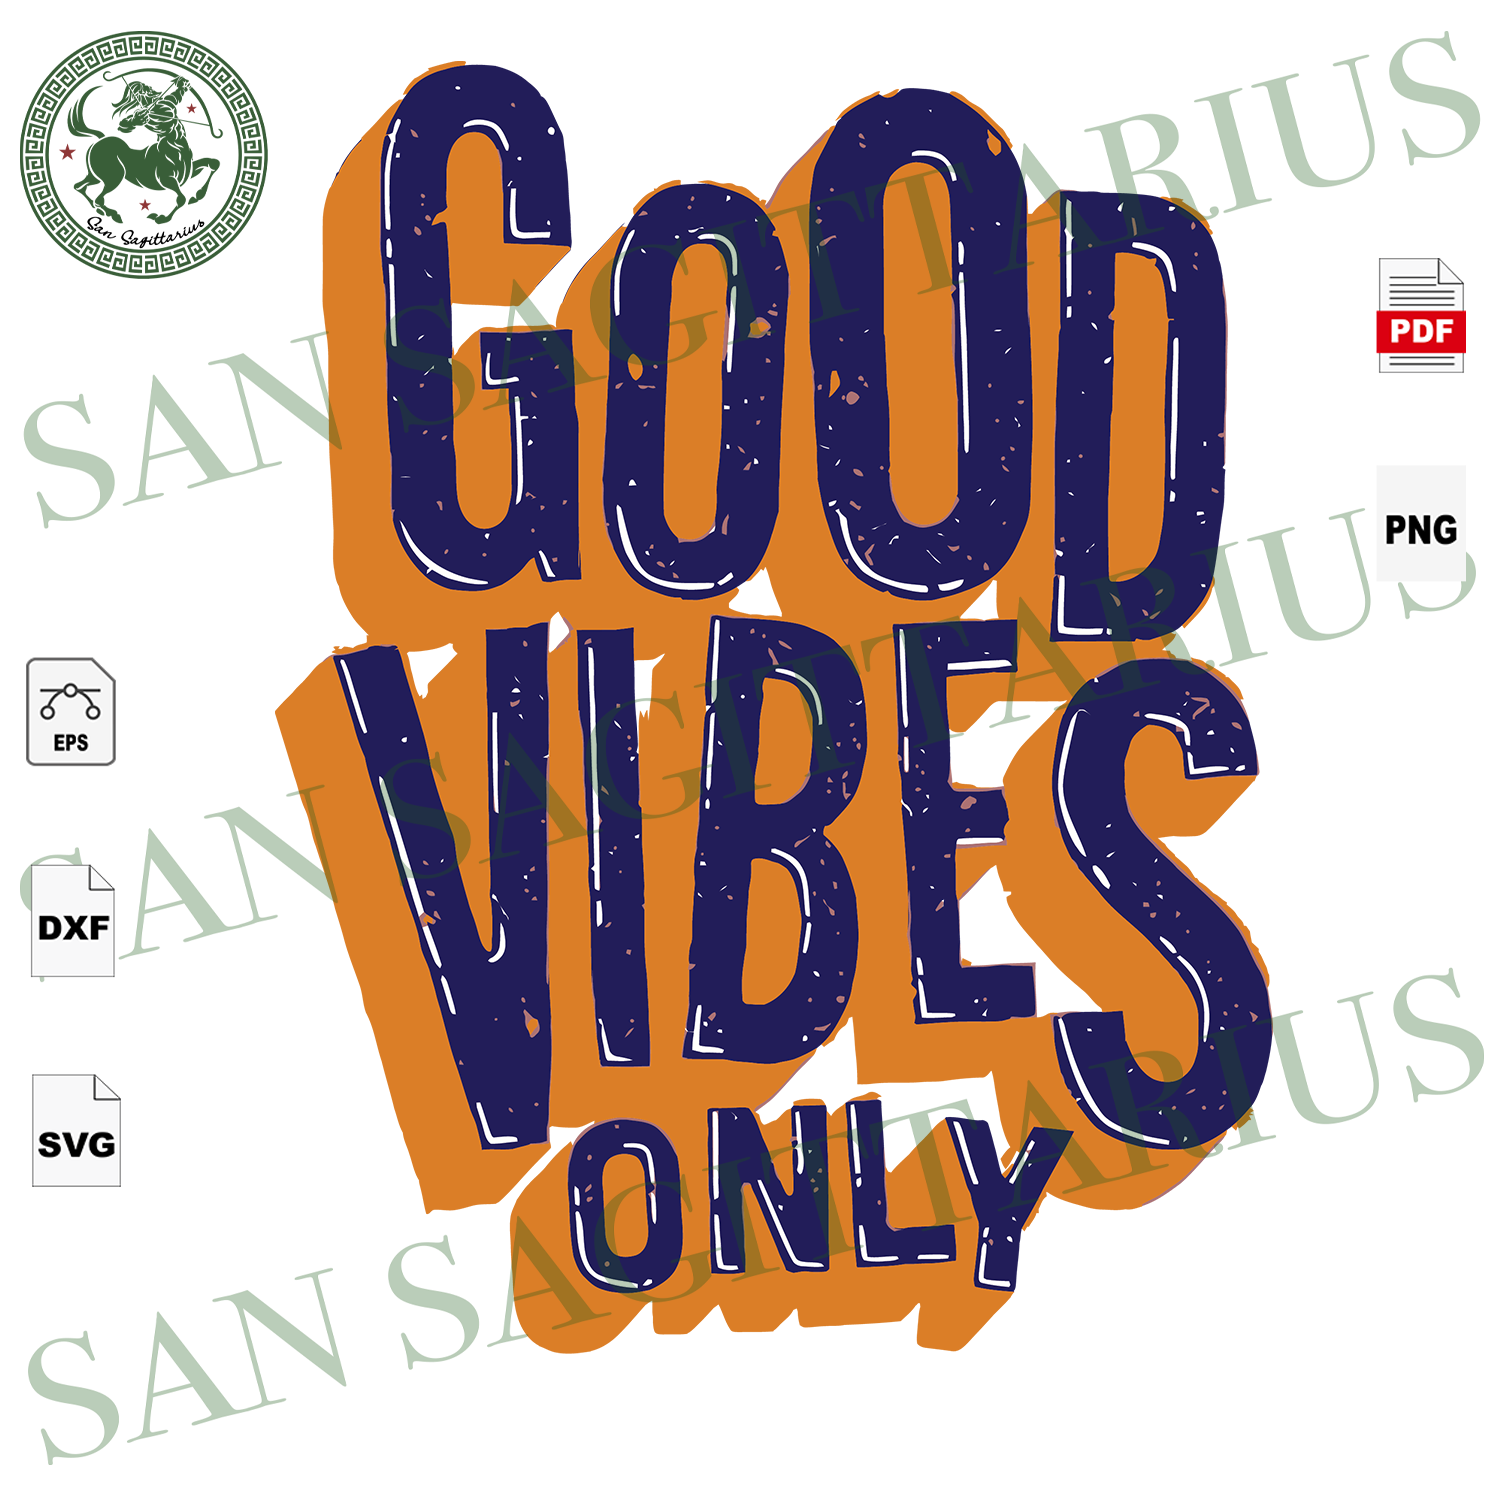 Good Vibes Only, Quotes Svg, Best Saying Svg, Inspirational Quotes, Inspiration, Motivational Quotes, Motivational Saying, Inspirational Saying, Best Quotes, Quotes, Funny Saying Svg, Funny Q